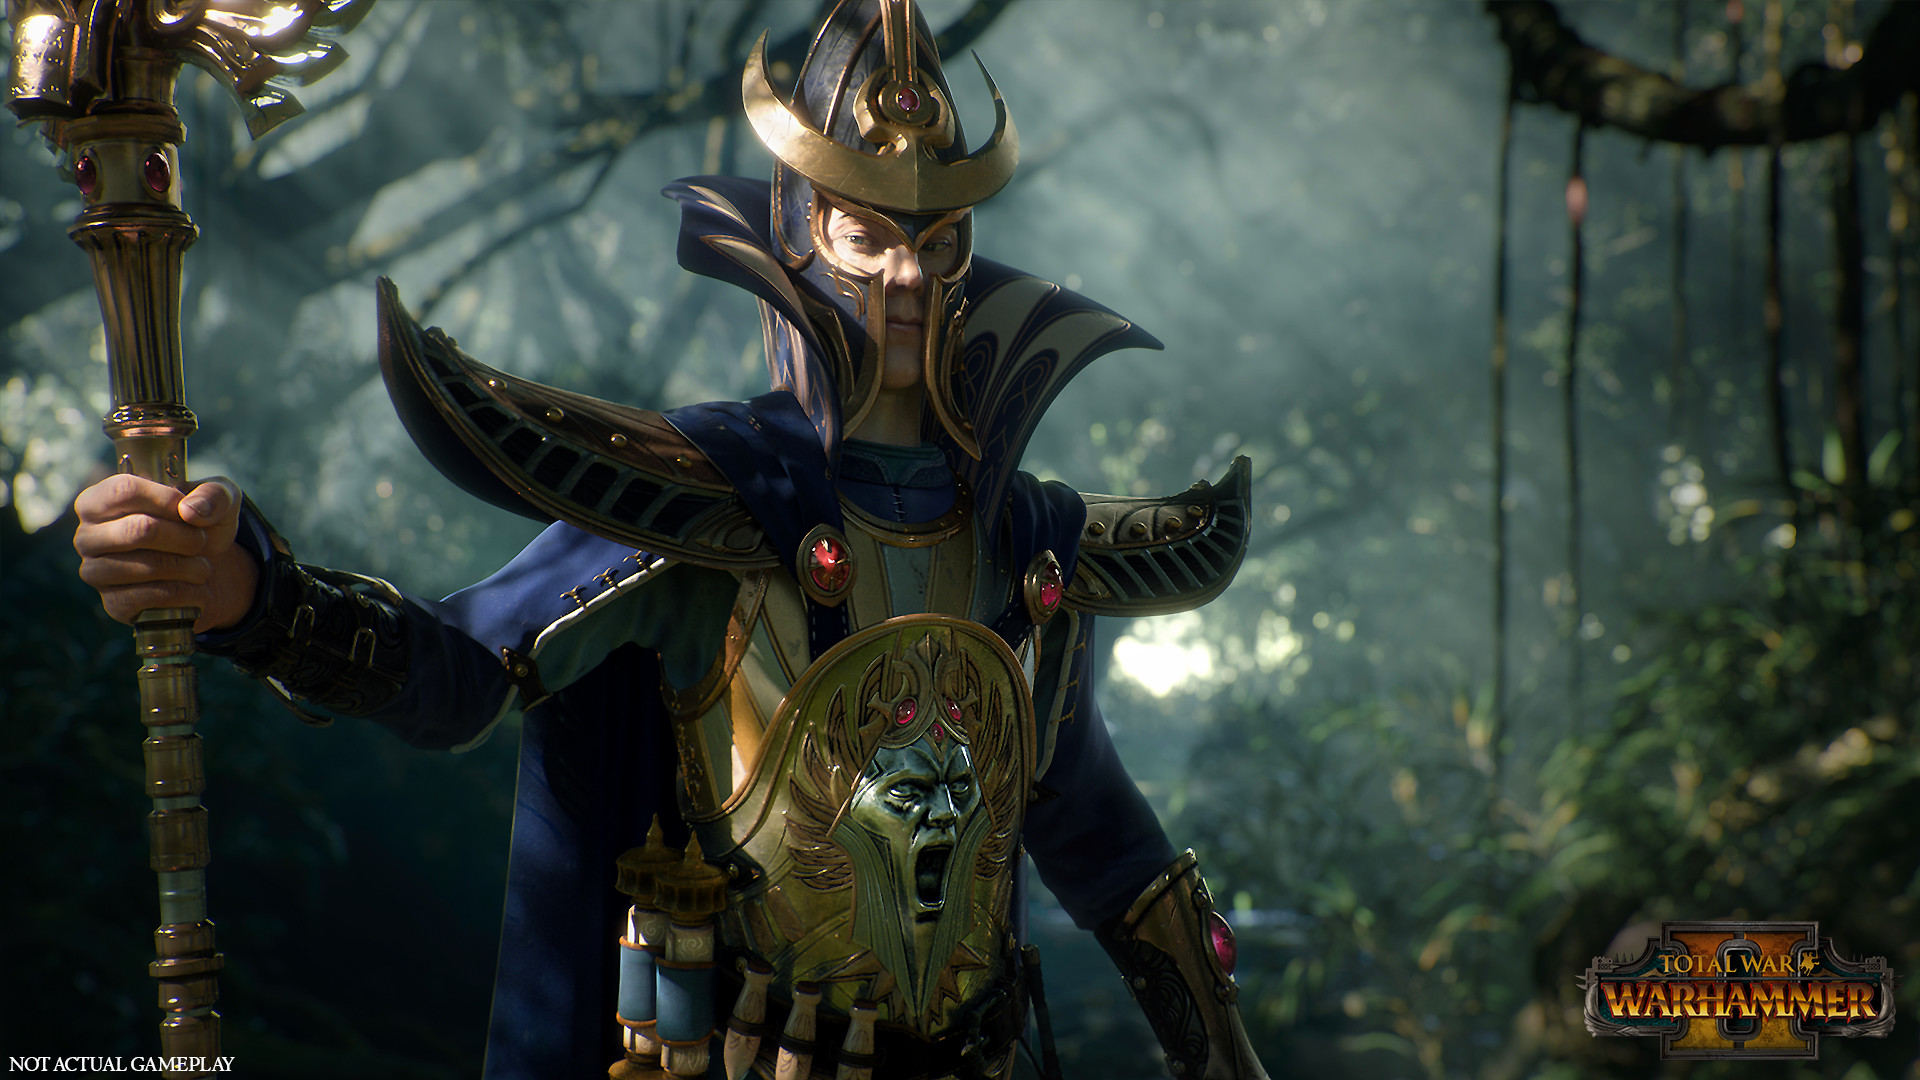 New Total War: Warhammer II Trailer Gives First Look on the Campaign Map